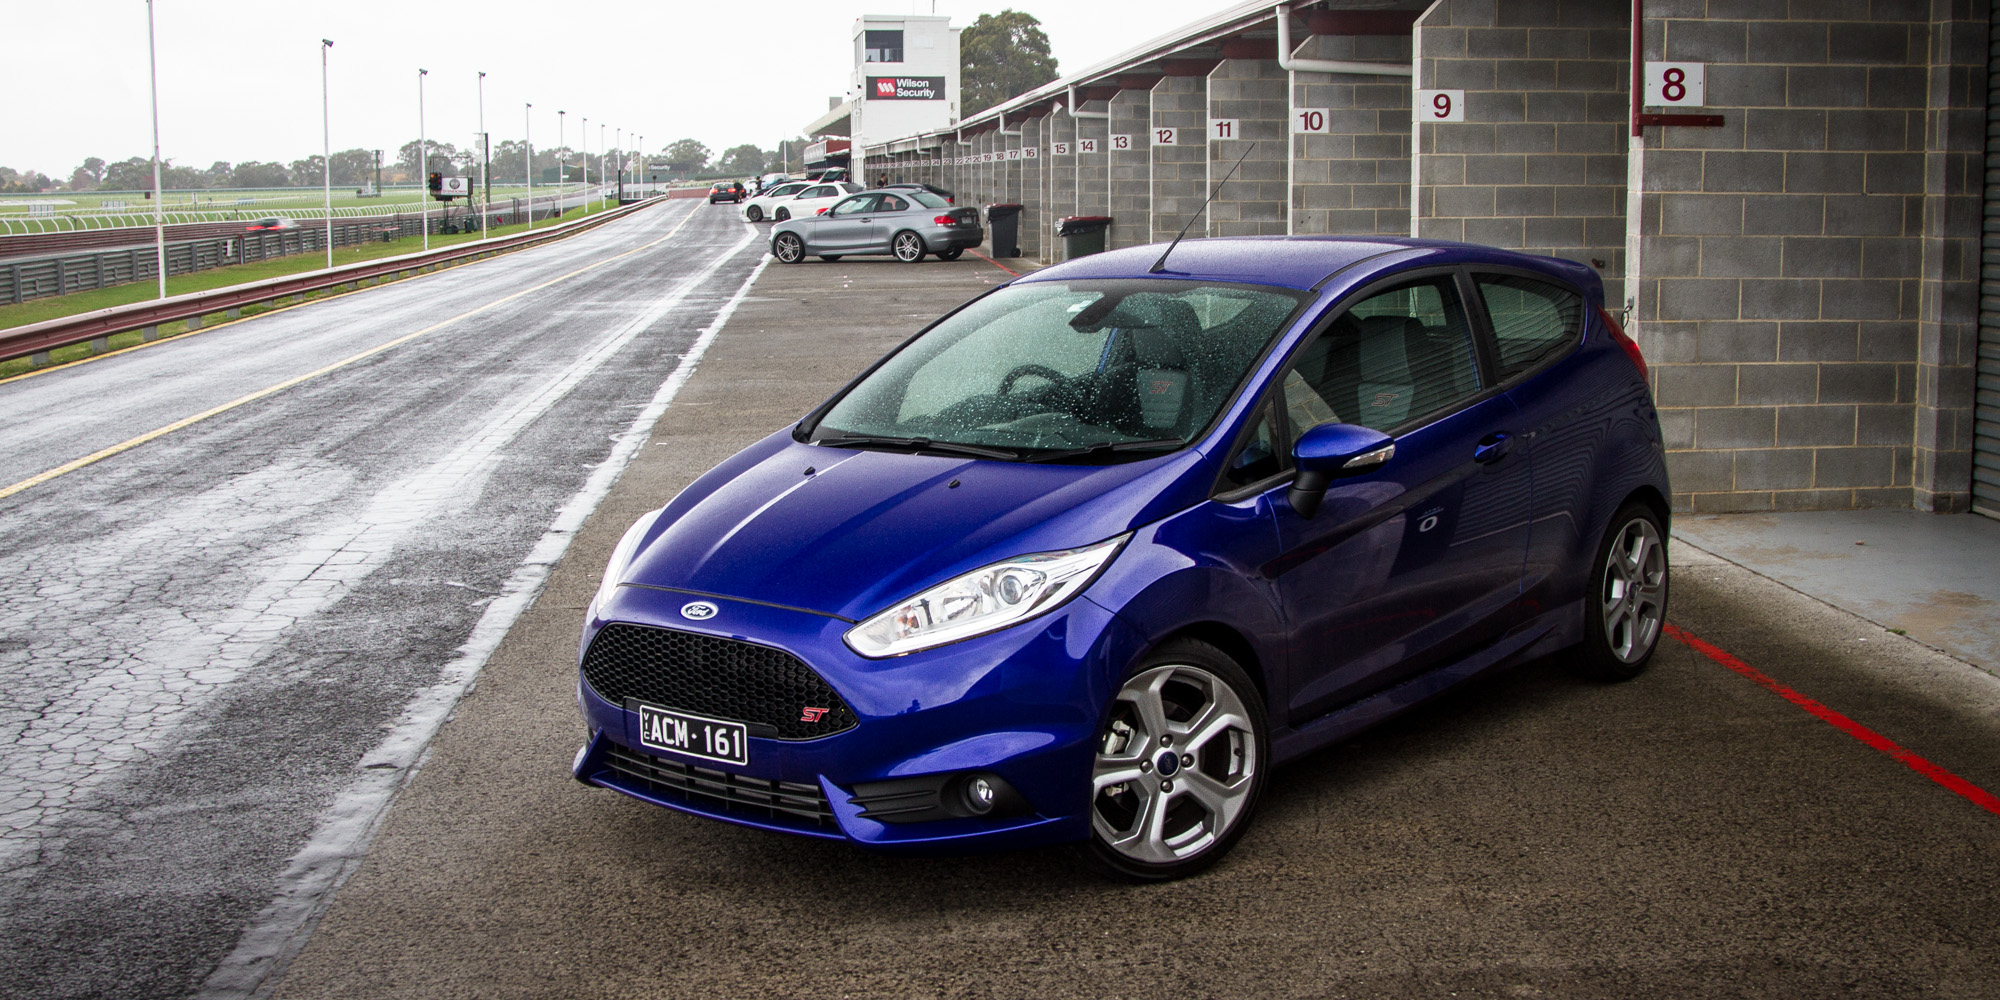 2015 ford fiesta st review sandown raceway weekender photos caradvice. Black Bedroom Furniture Sets. Home Design Ideas